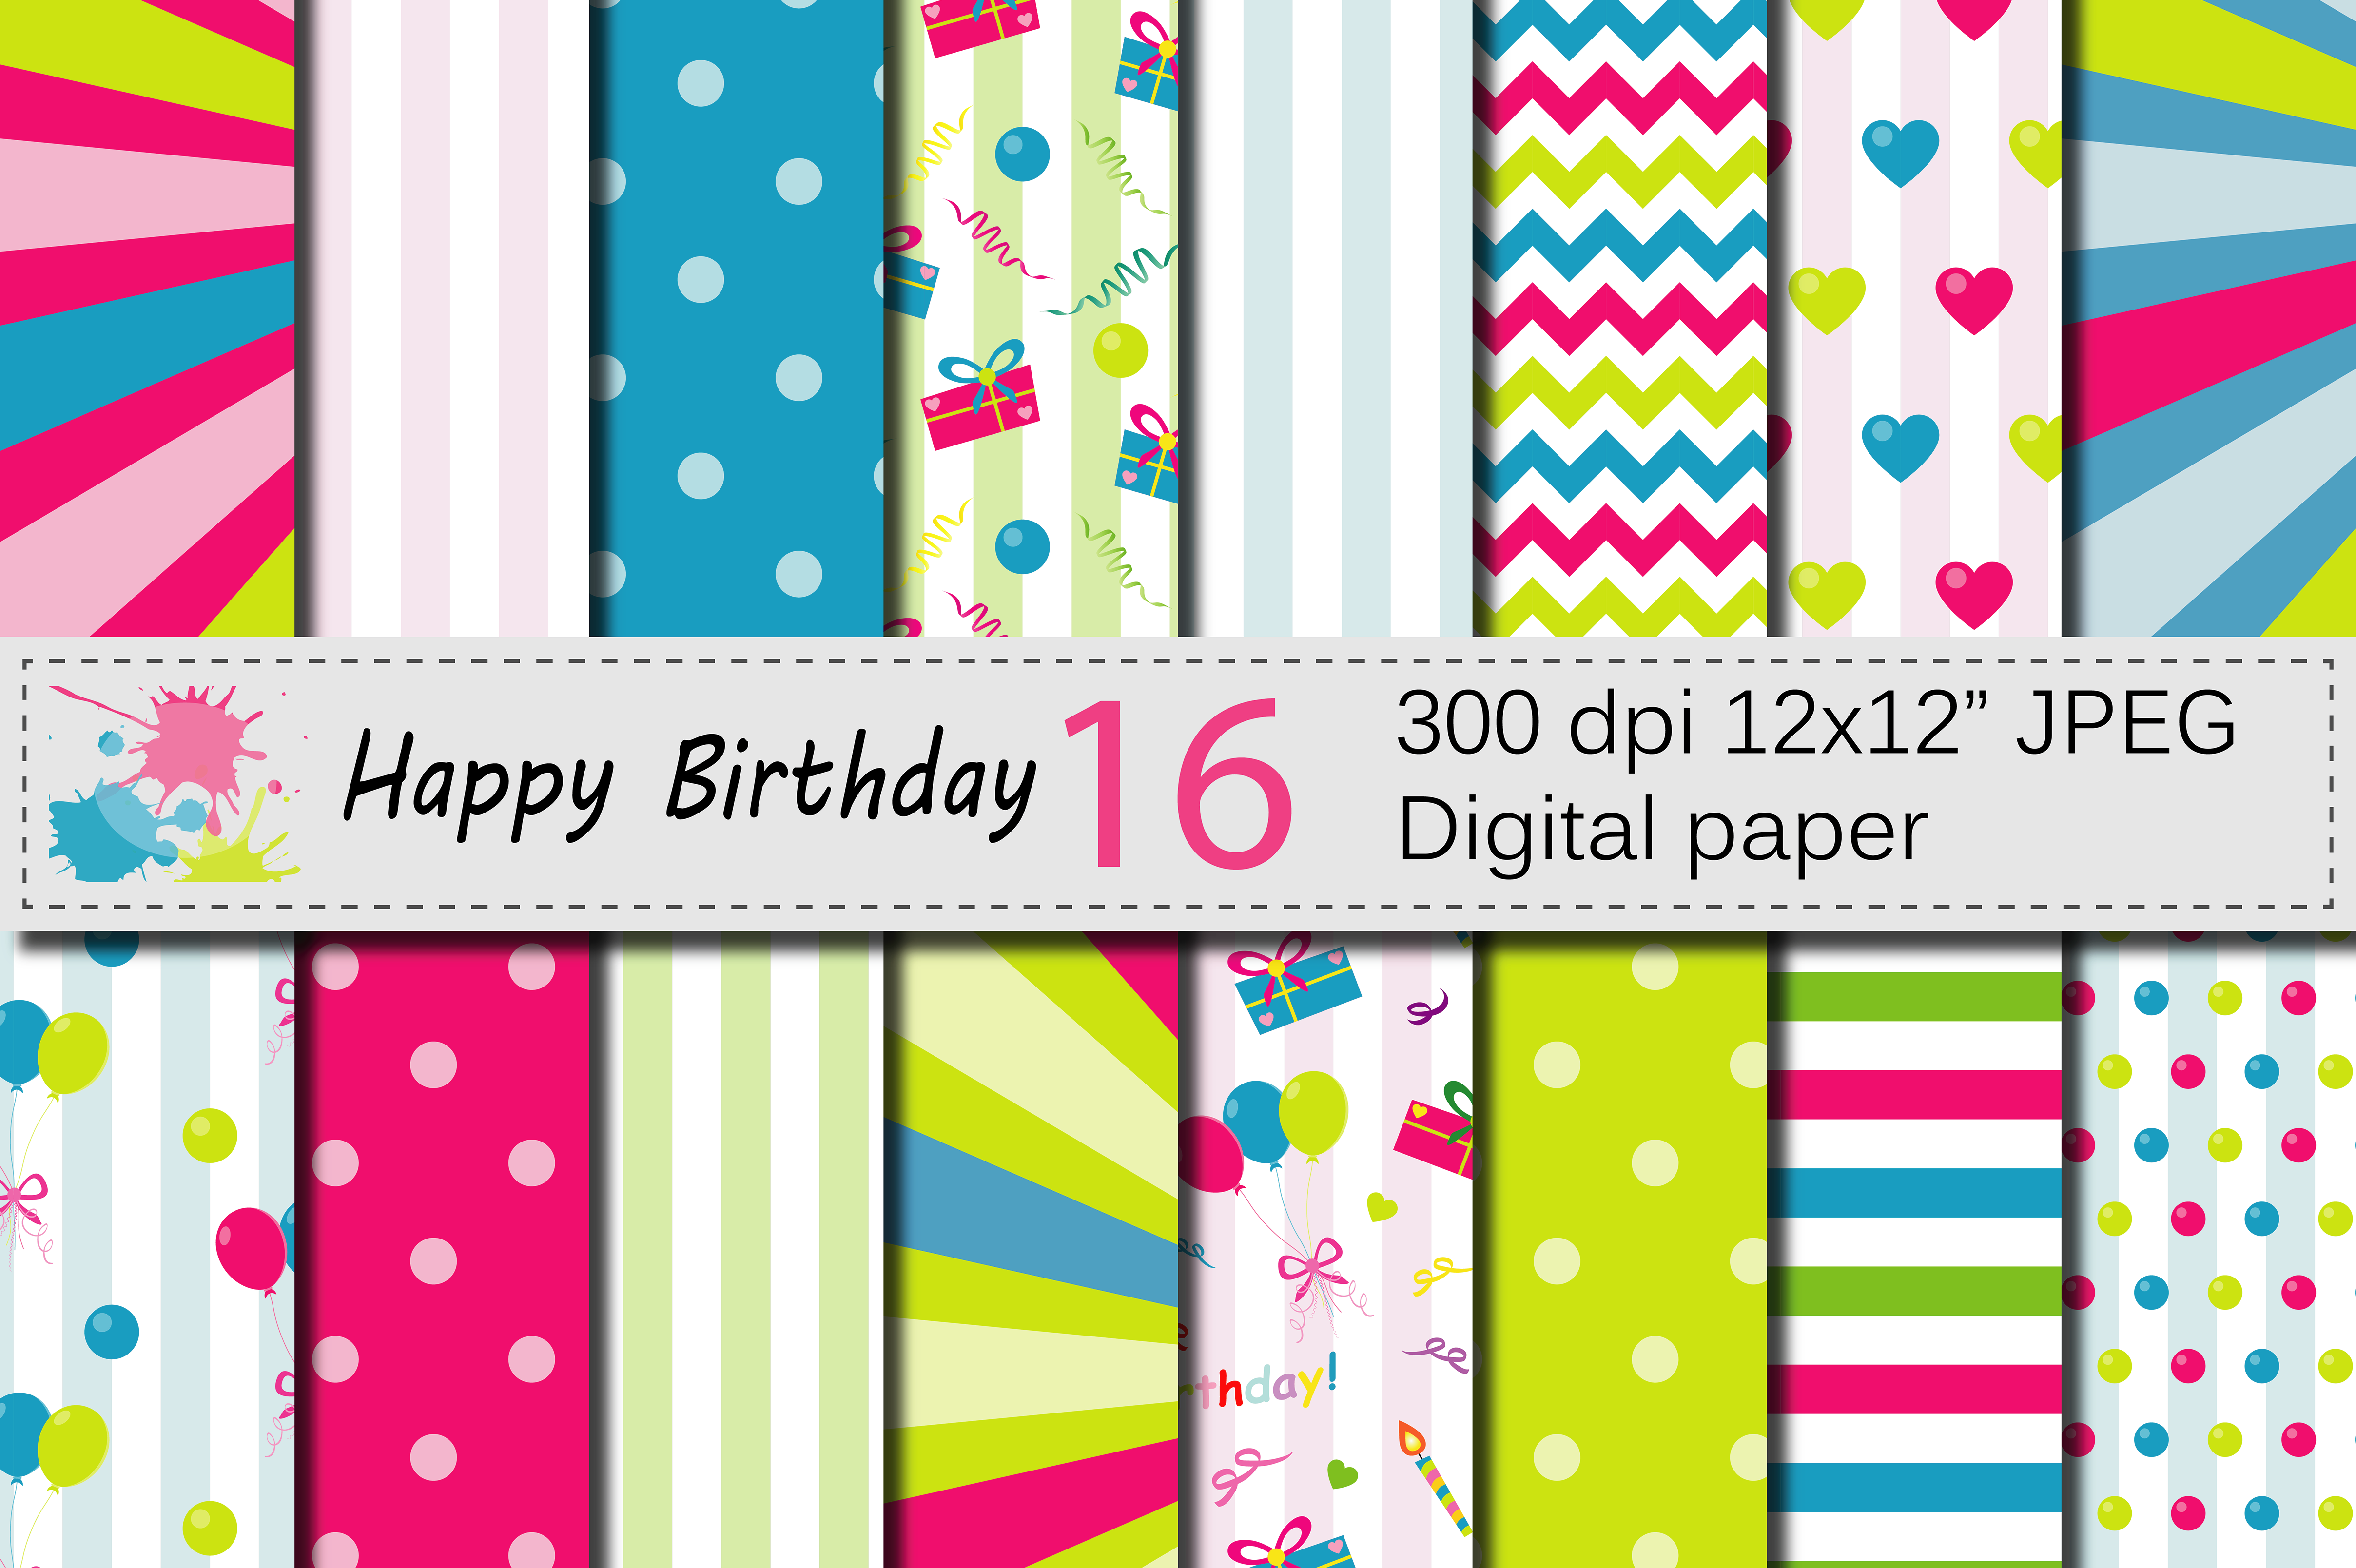 Happy Birthday Digital Papers with Balloons and Presents / Kids Birthday Party Backgrounds Graphic By VR Digital Design